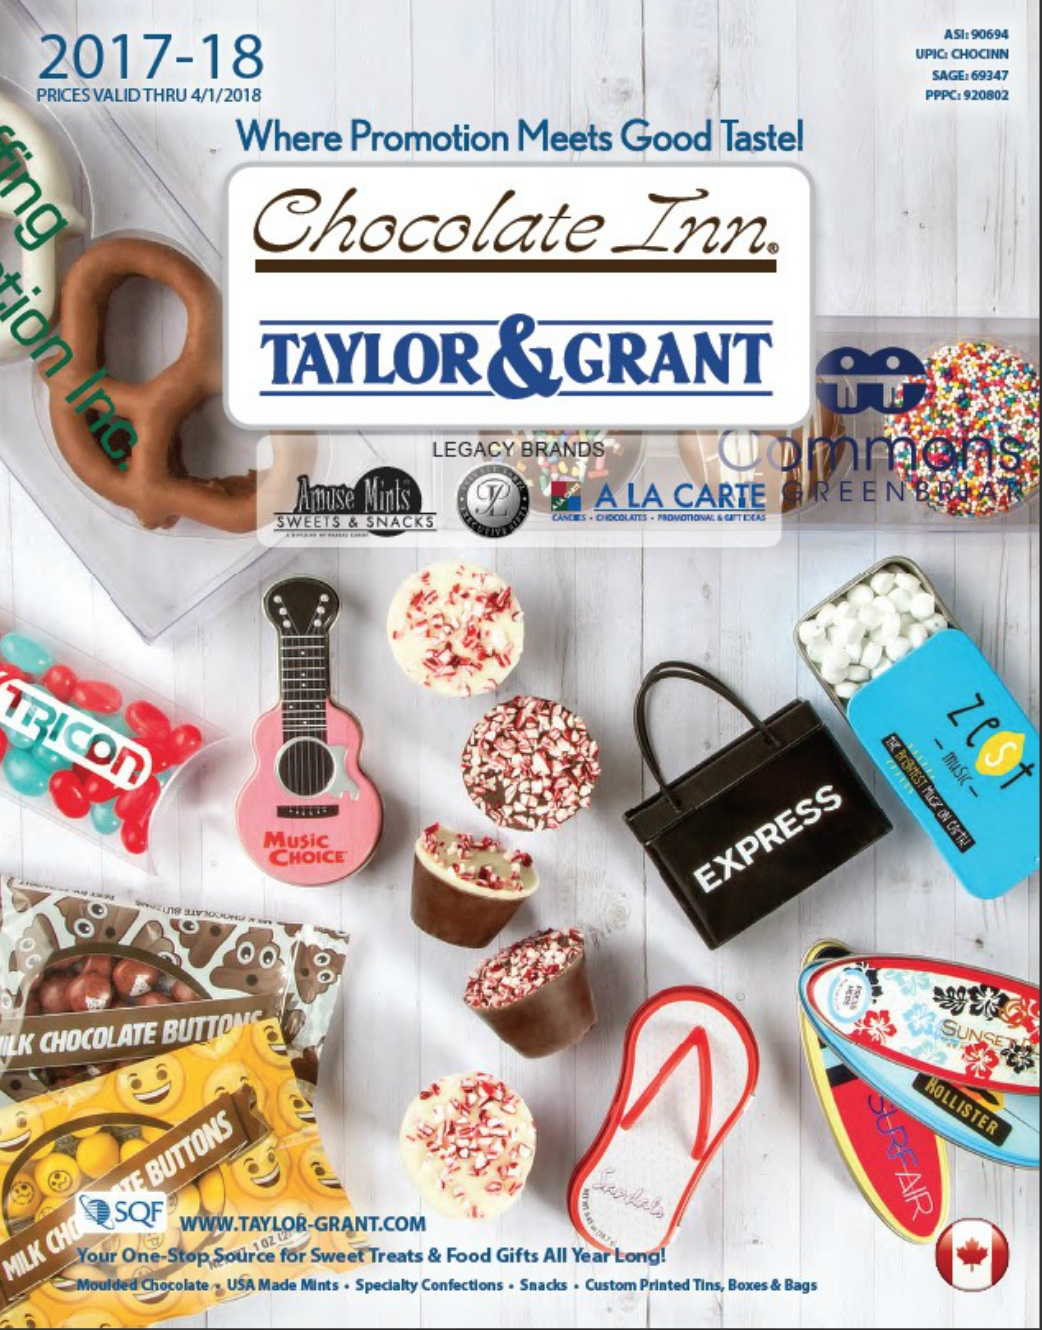 BRANDED CHOCOLATES & CANDIES